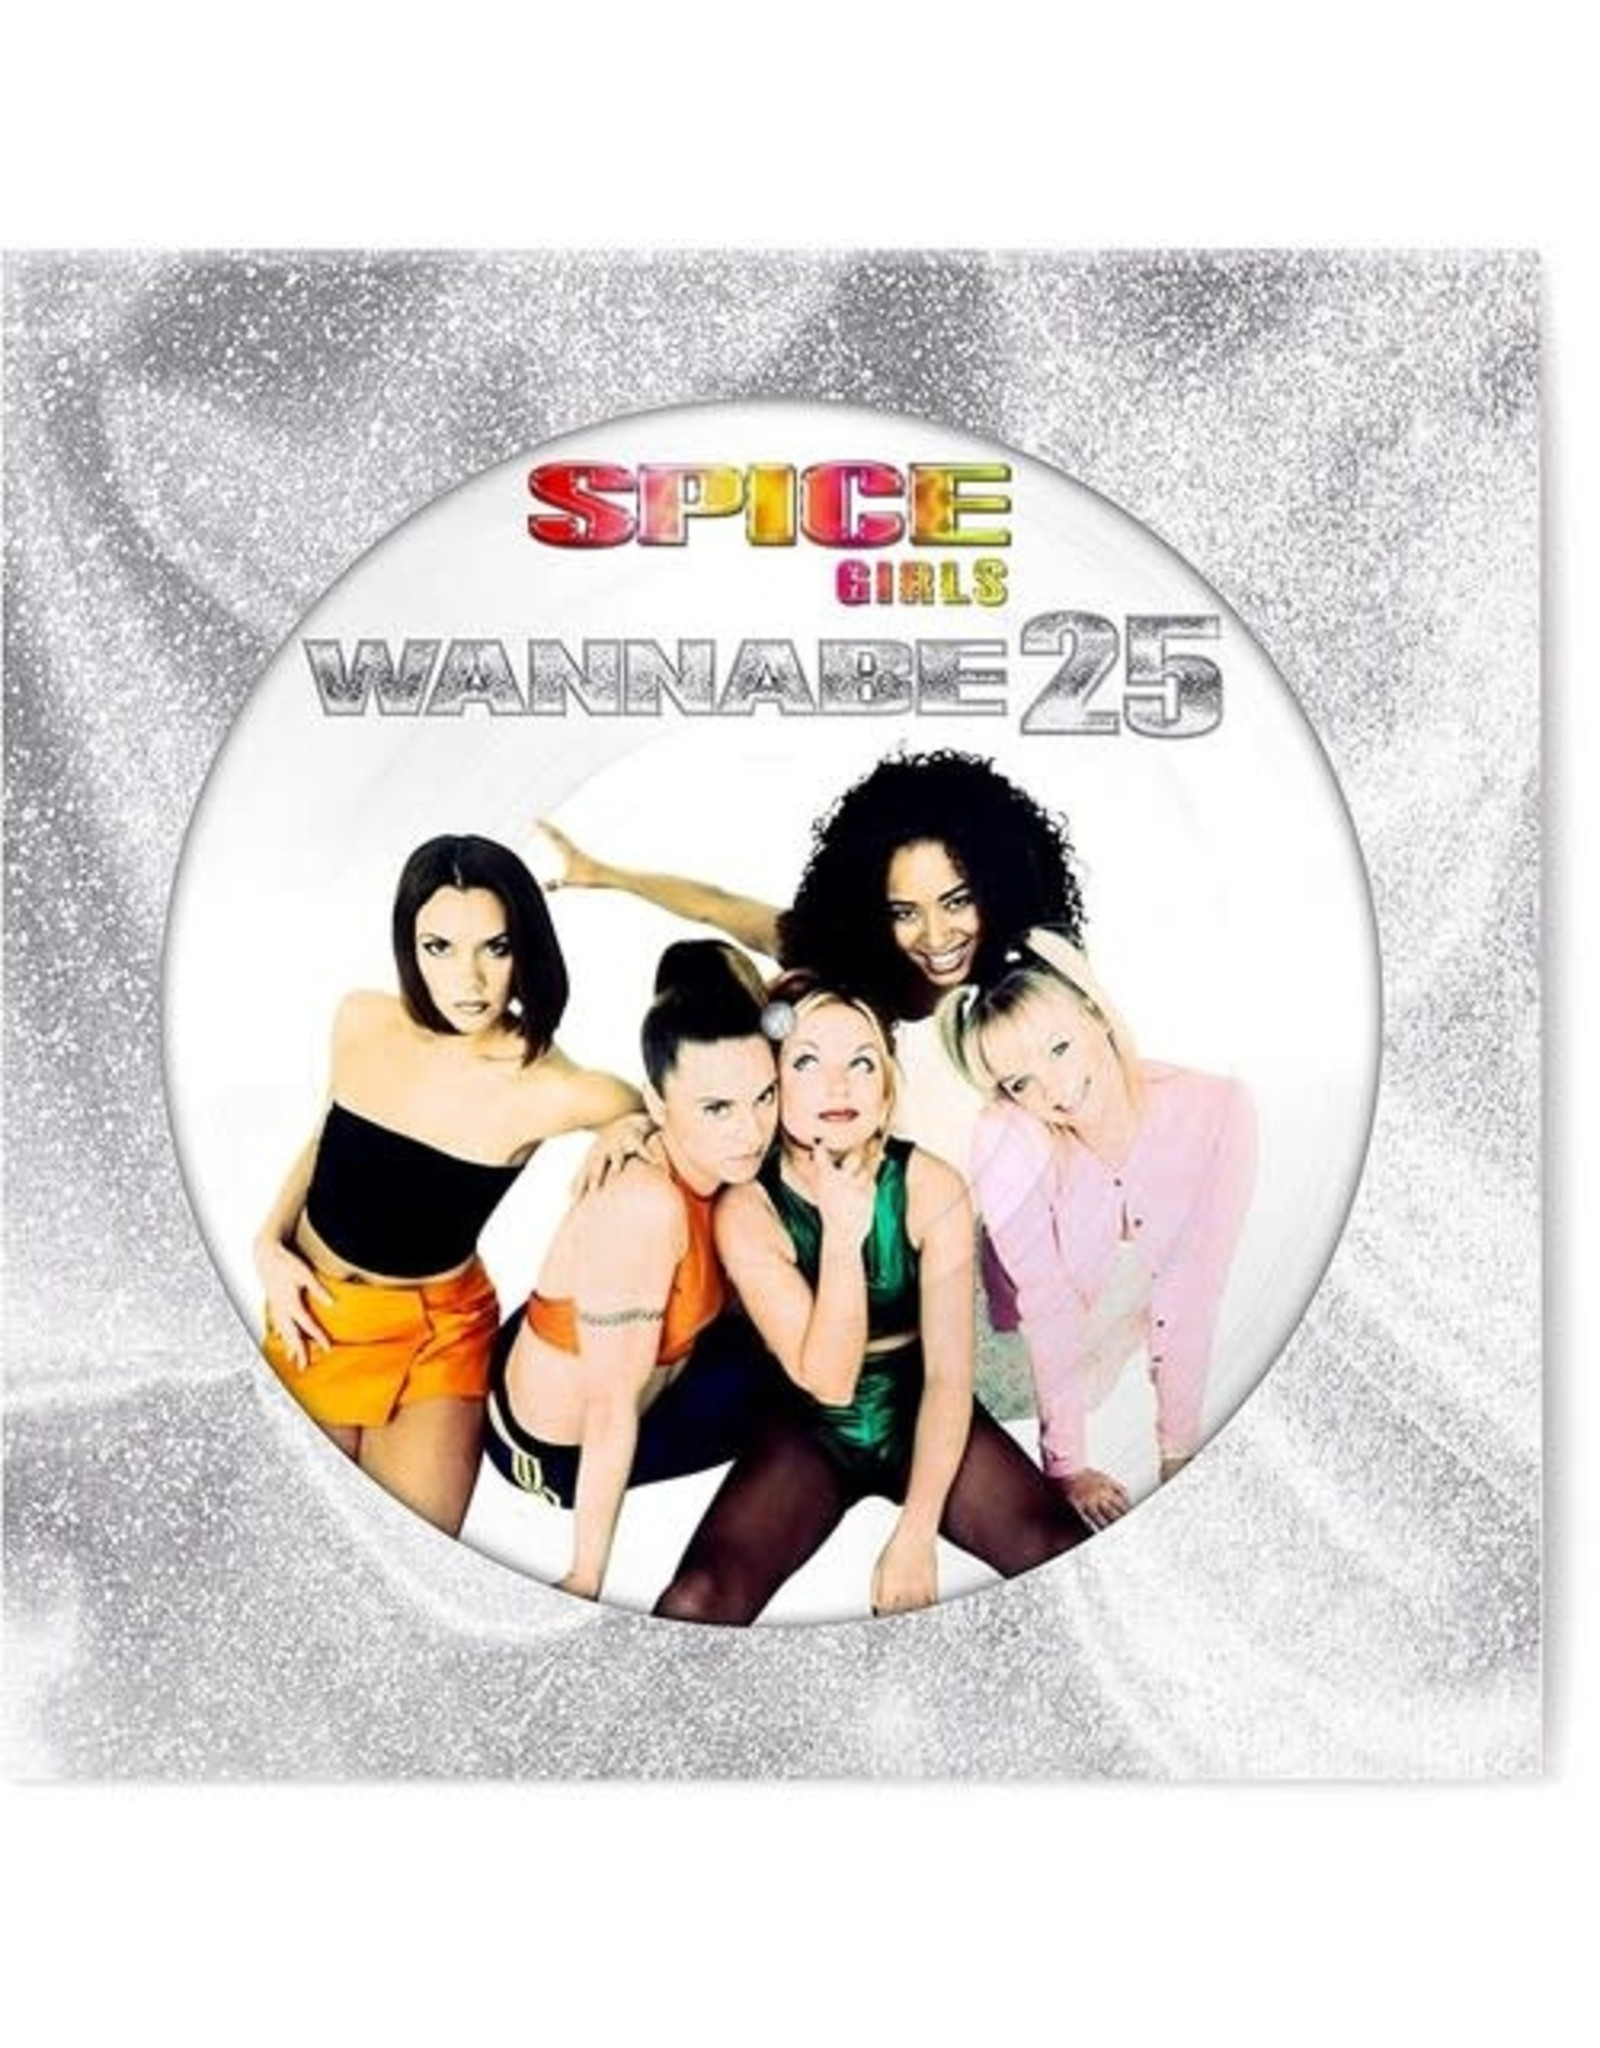 """New Vinyl Spice Girls - Wannabe 25 EP (Picture) 12"""""""